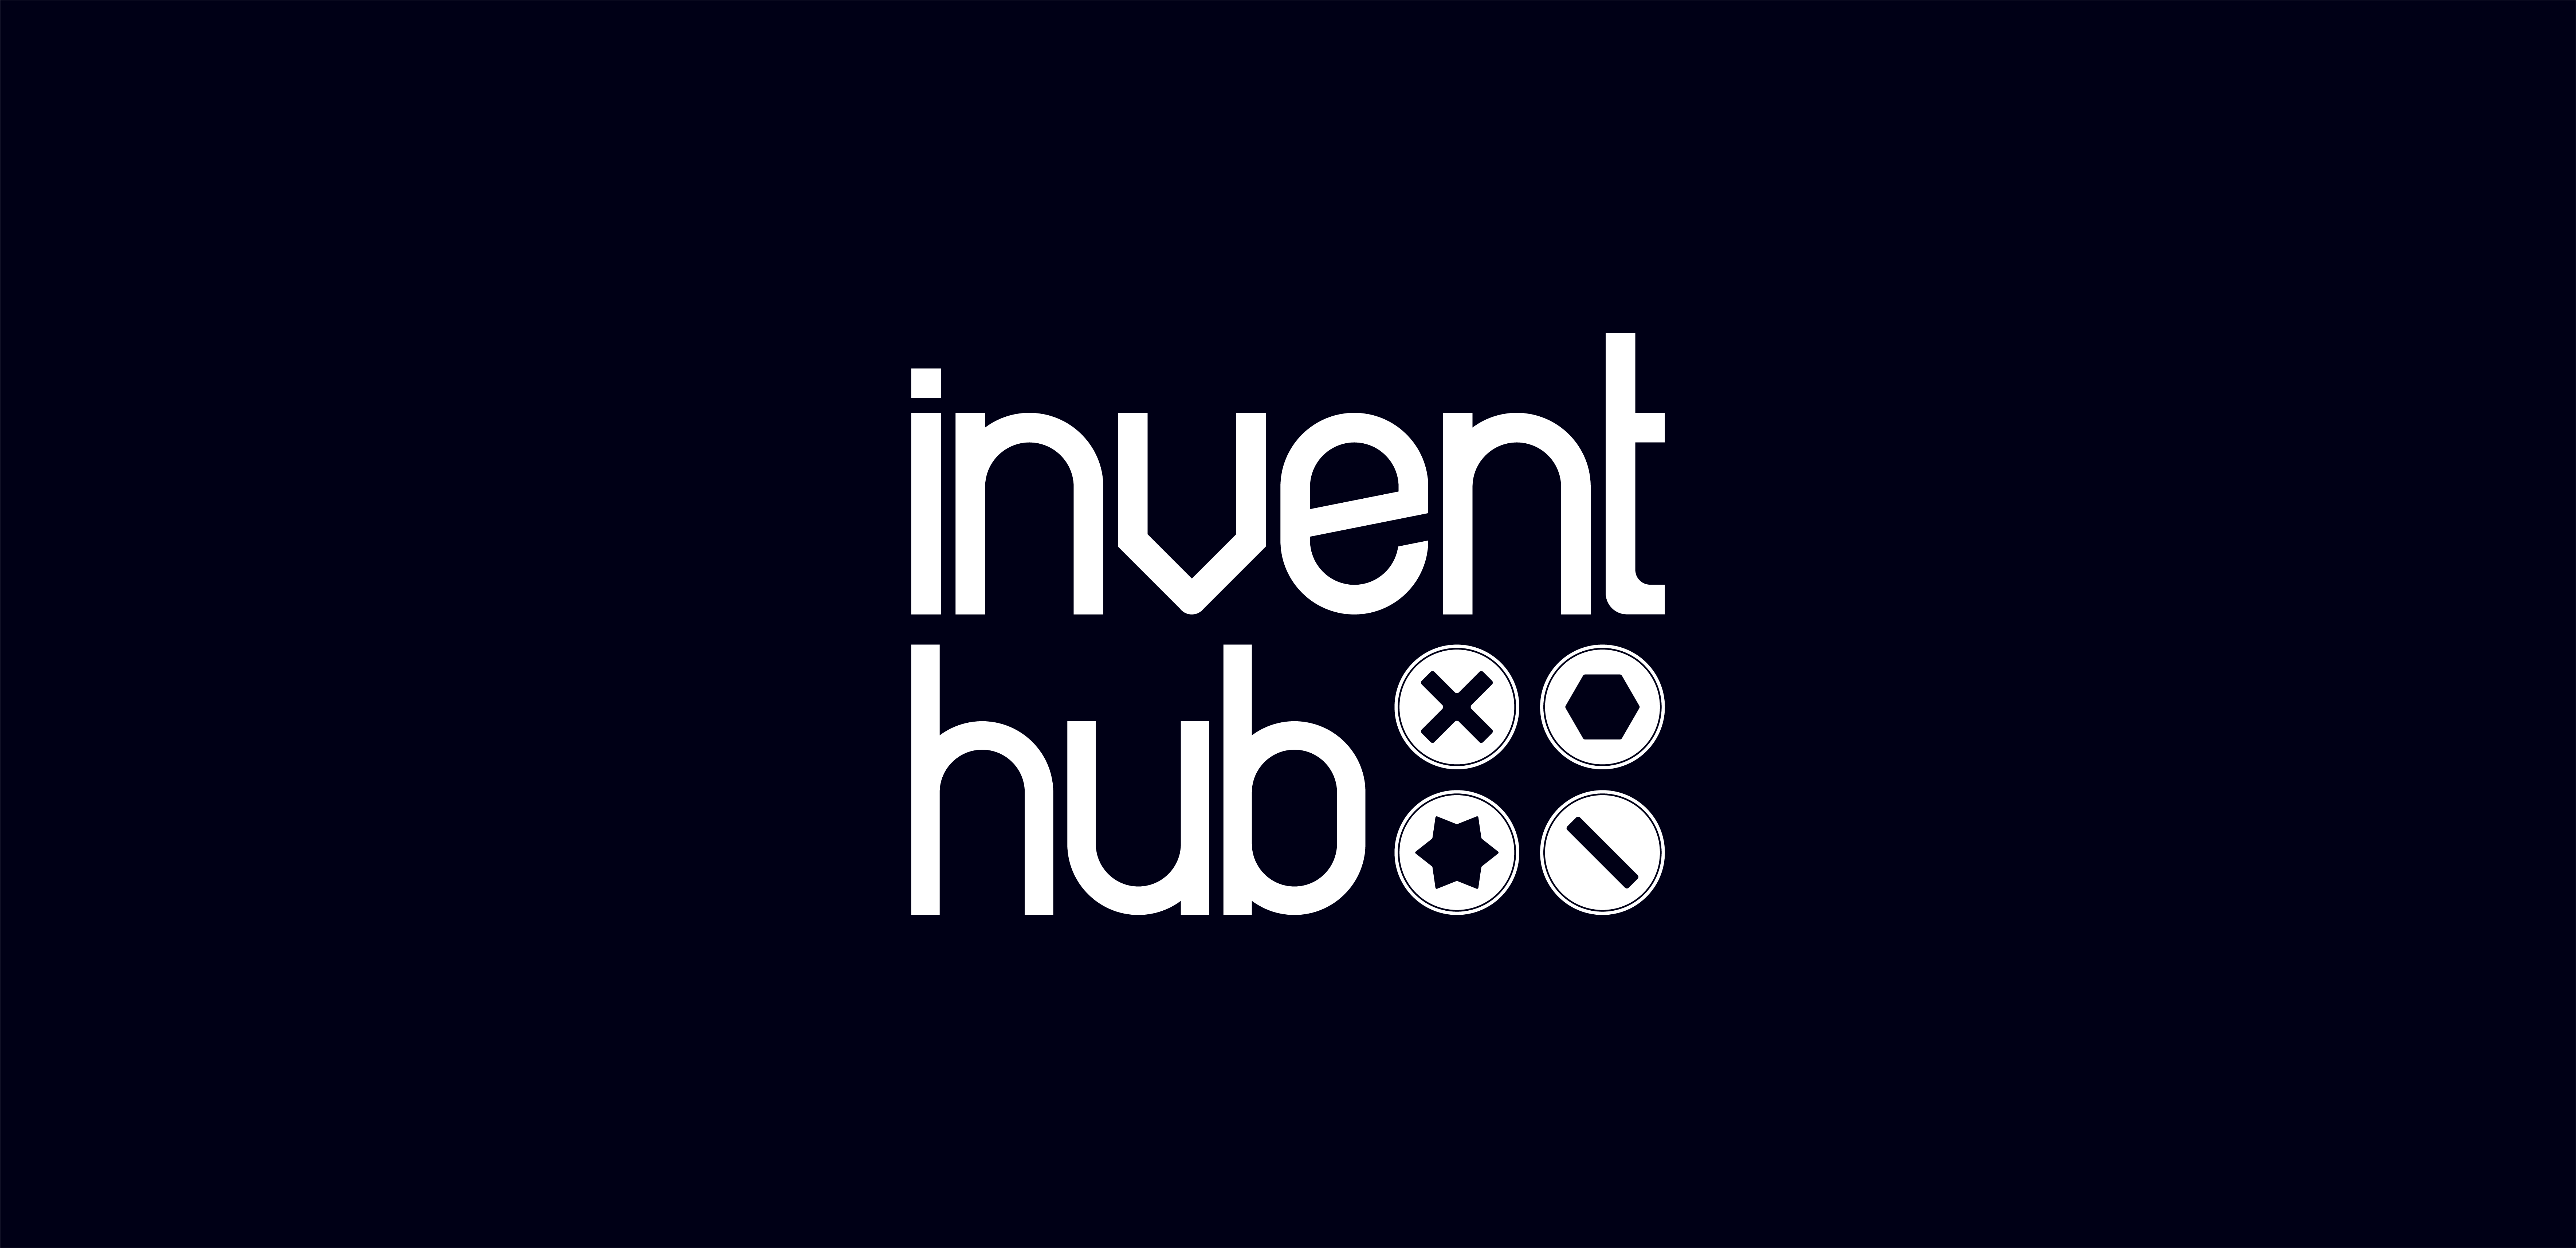 InventHub logo in white